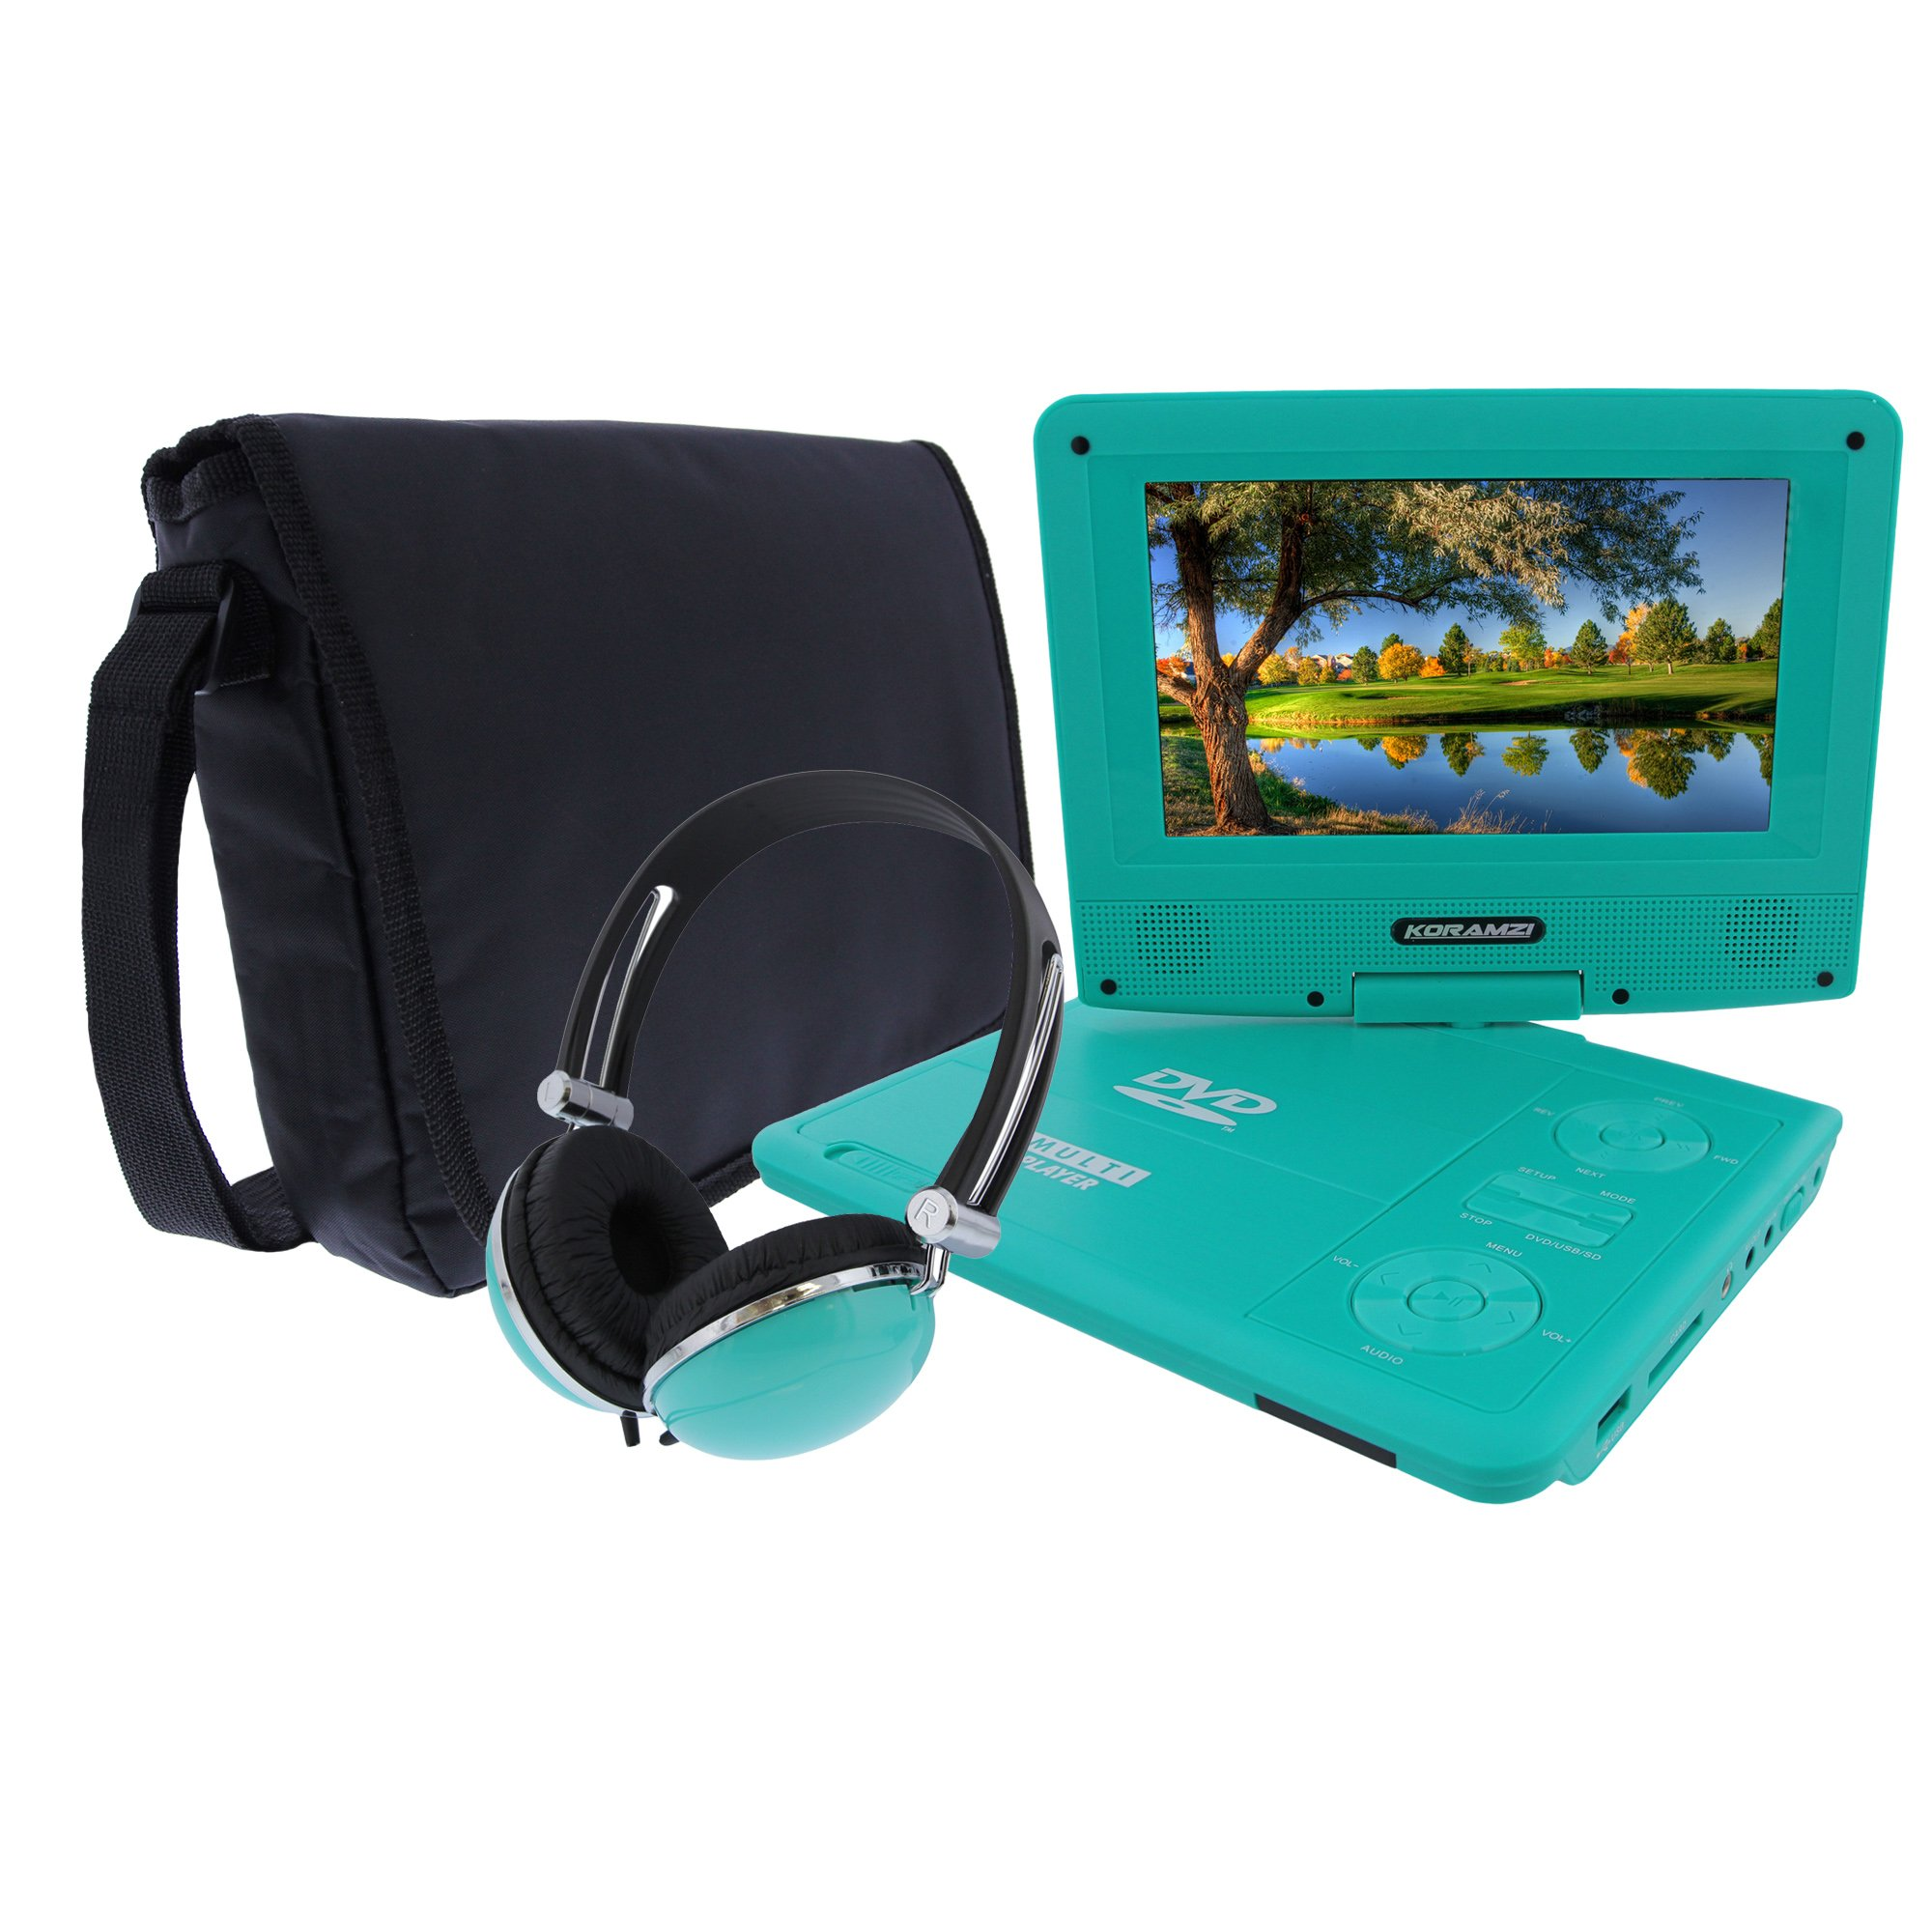 KORAMZI 7 inch Portable DVD Player with Rechargeable Battery, SD Card Slot and USB Port Swivel and Fold Portable DVD/CD/MP3 Player with Matching Color Headphones AC/DC Adapter (Green)- PDVD777